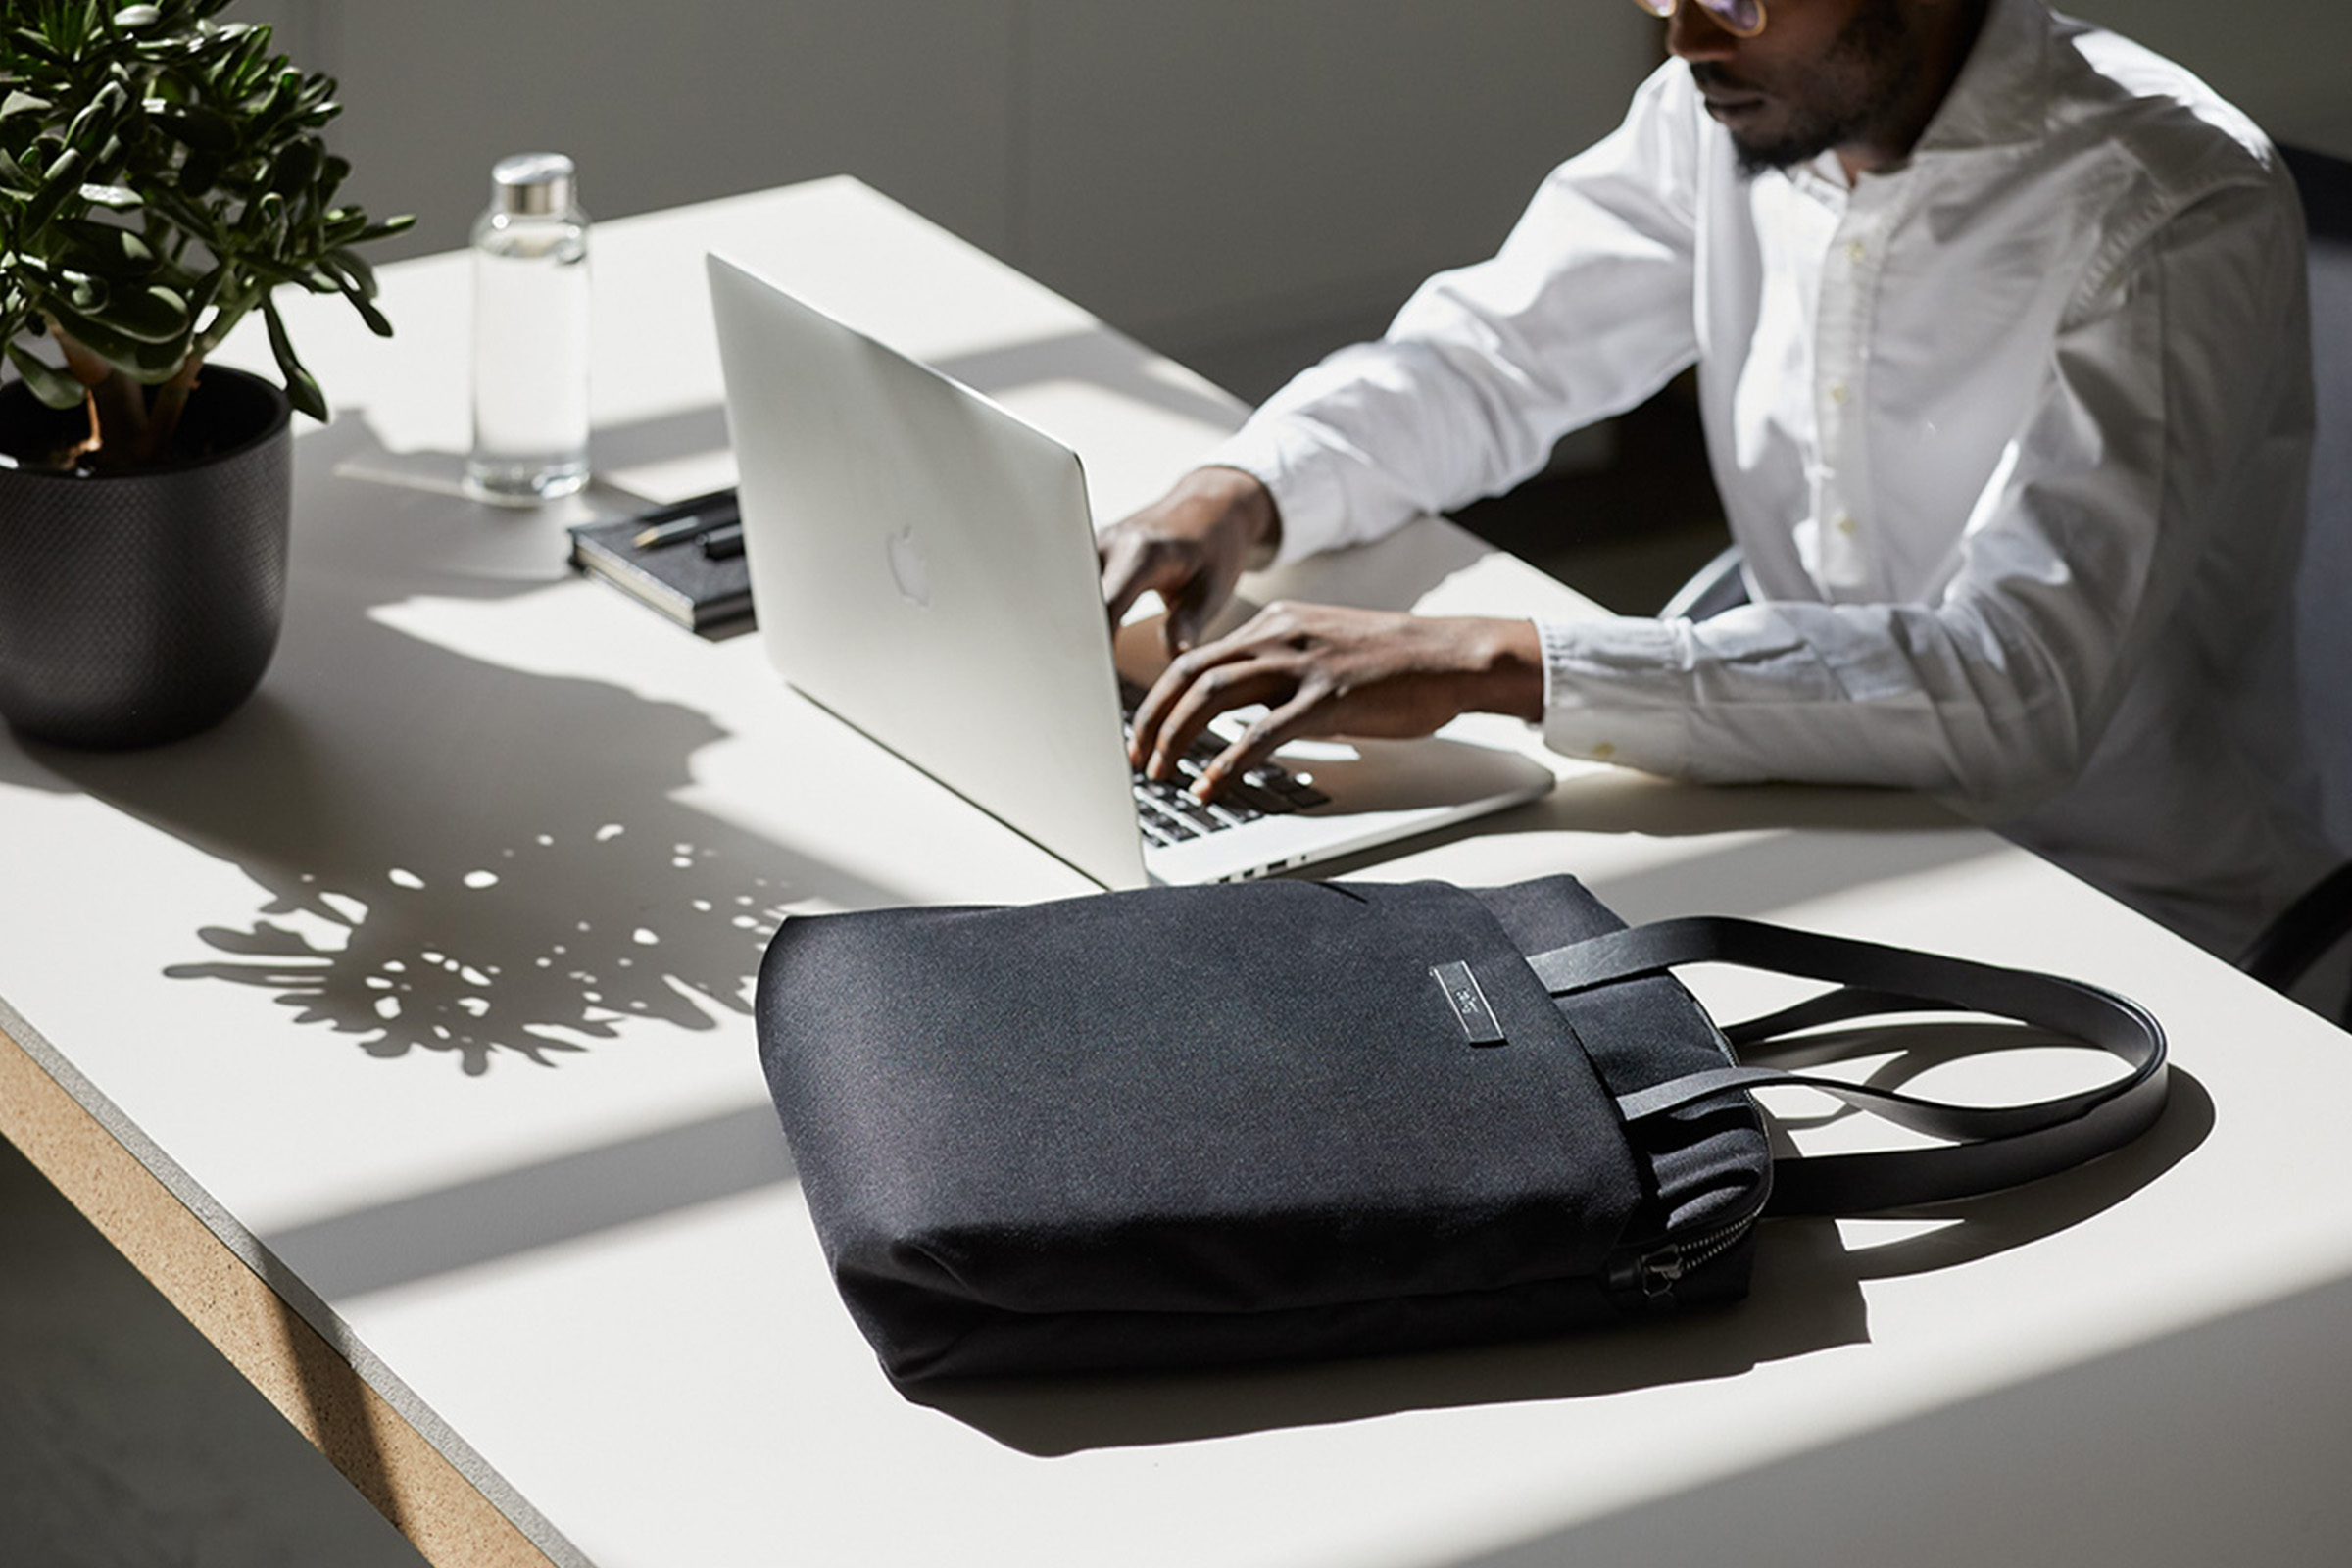 The New Bellroy Bags Range | Minimalist & Functional